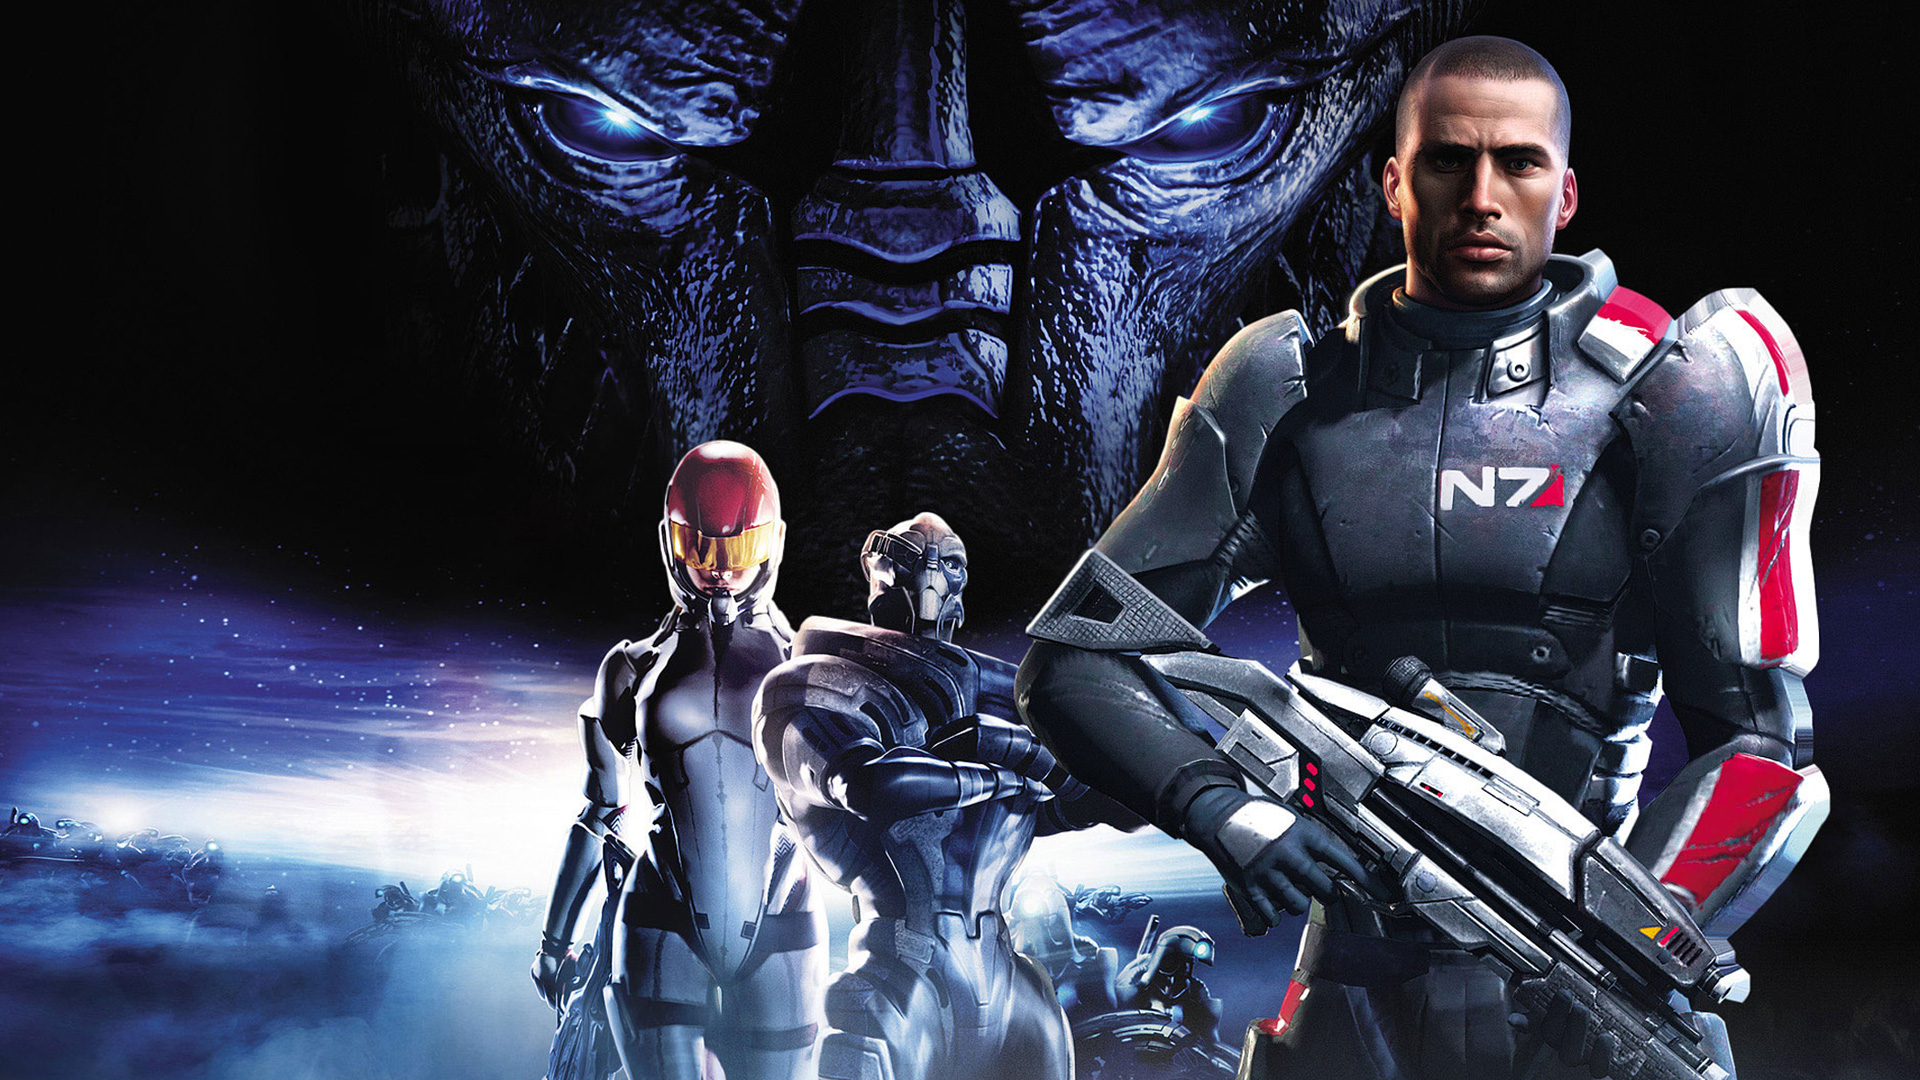 Mass Effect 2 wallpaper 4